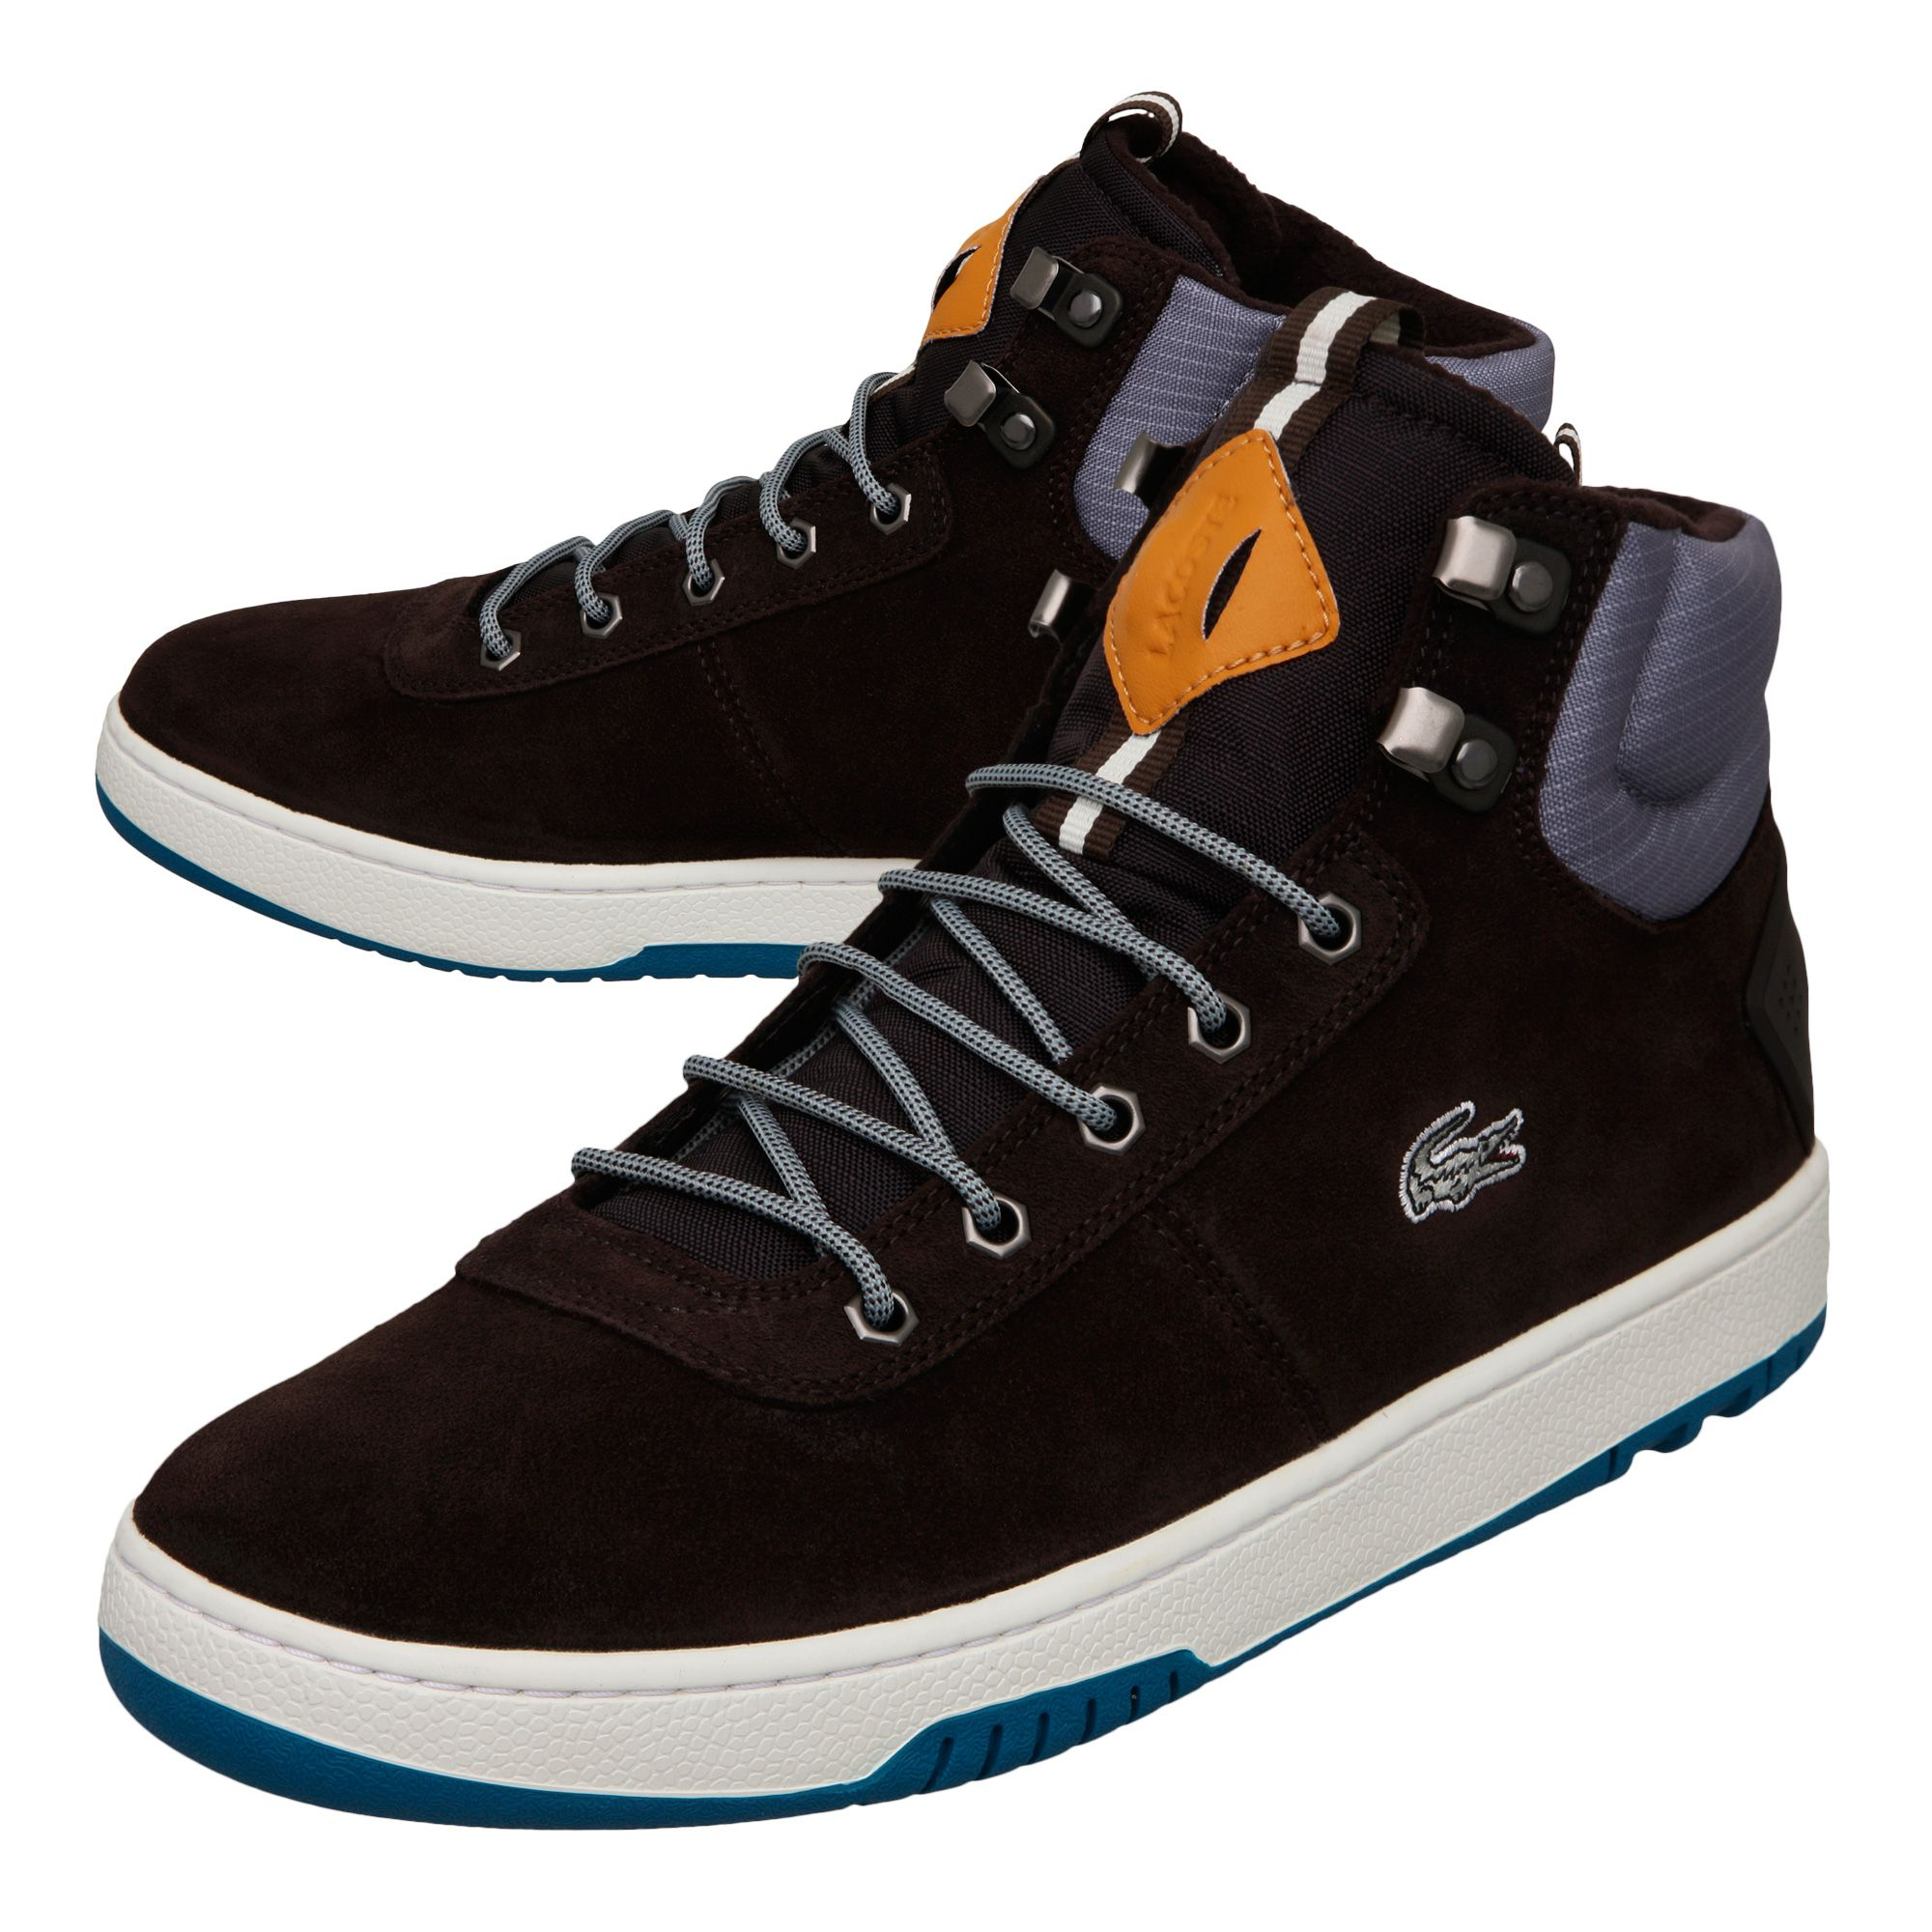 Jd Sports Lacoste Shoes